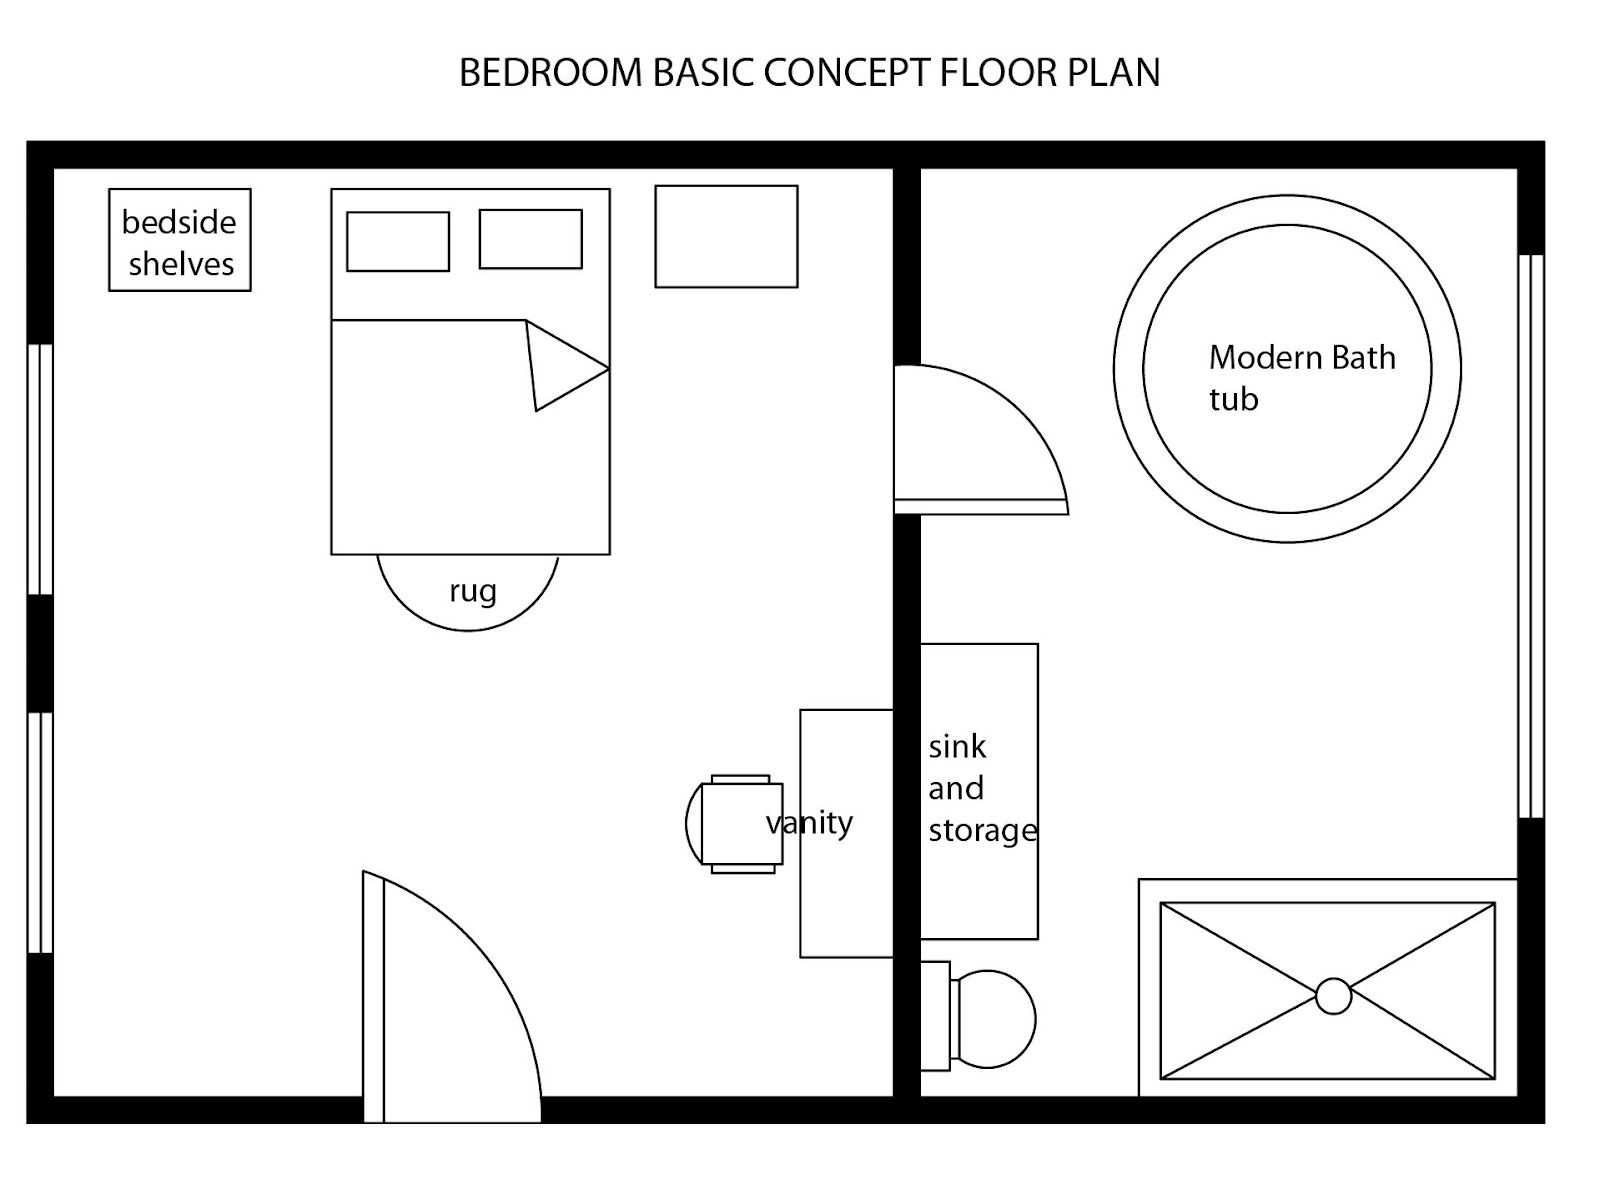 1 bedroom layout plans design ideas 2017 2018 pinterest